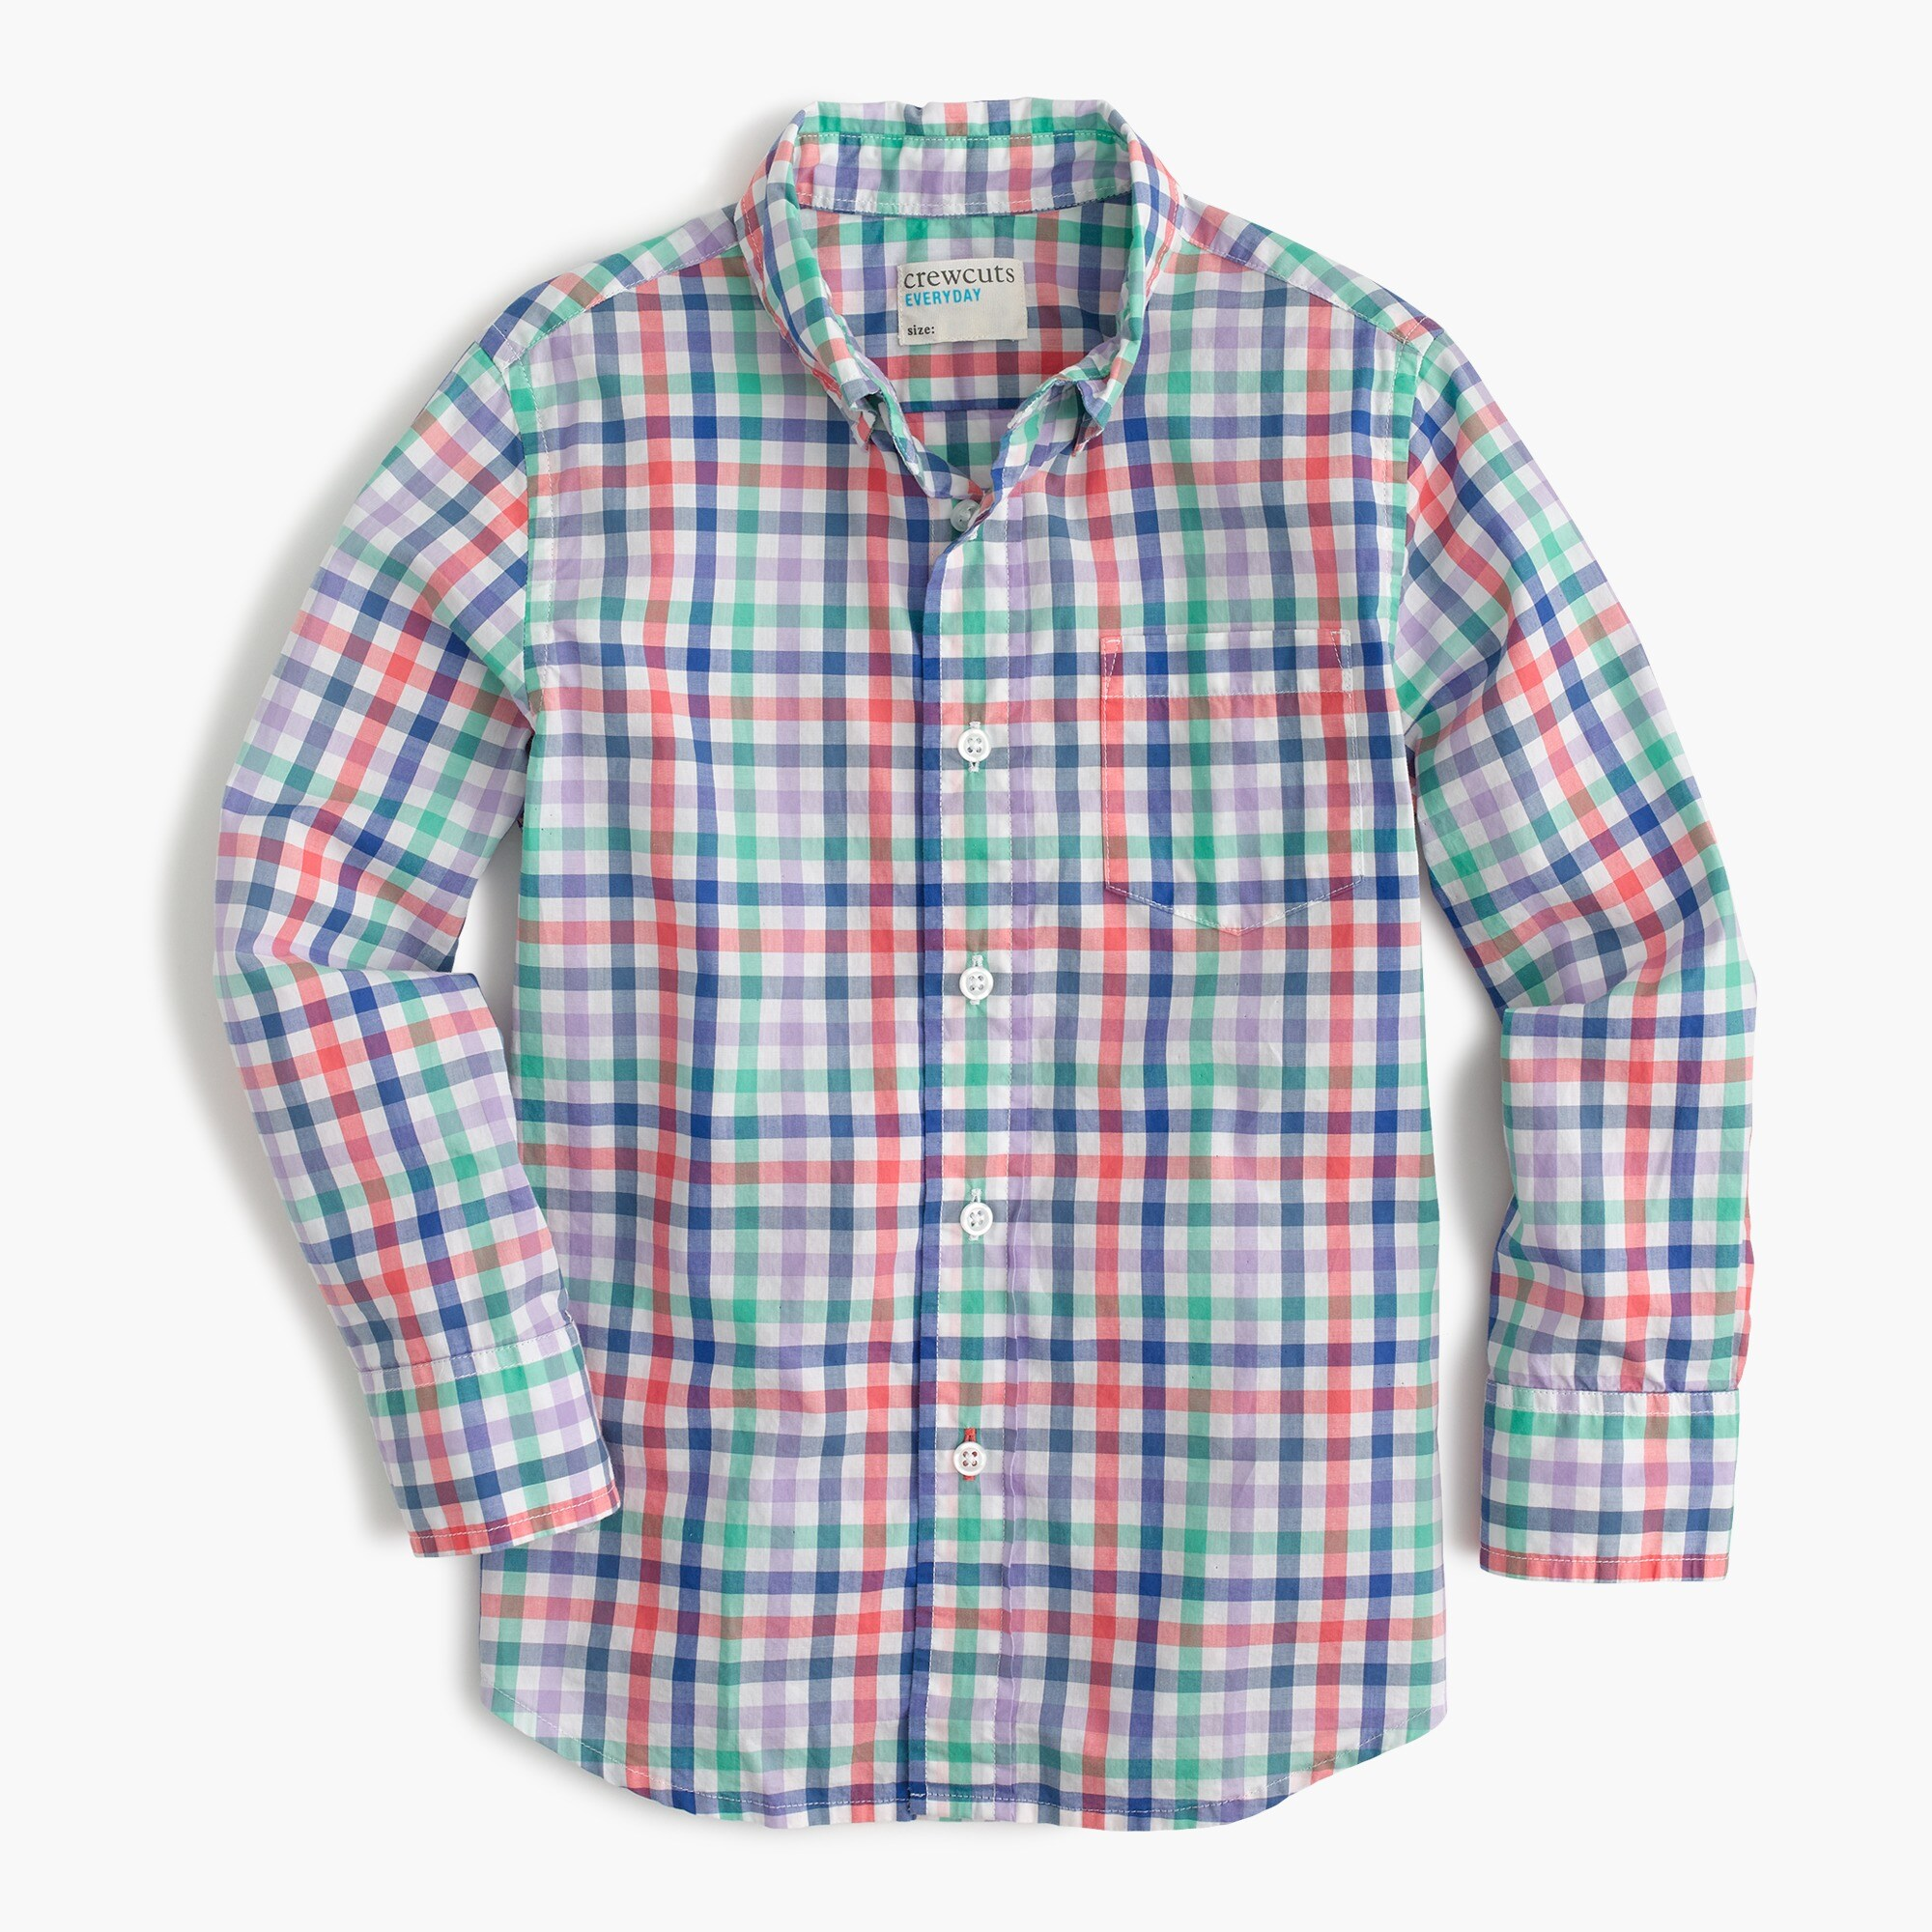 Image 2 for Kids' Secret Wash shirt in rainbow plaid